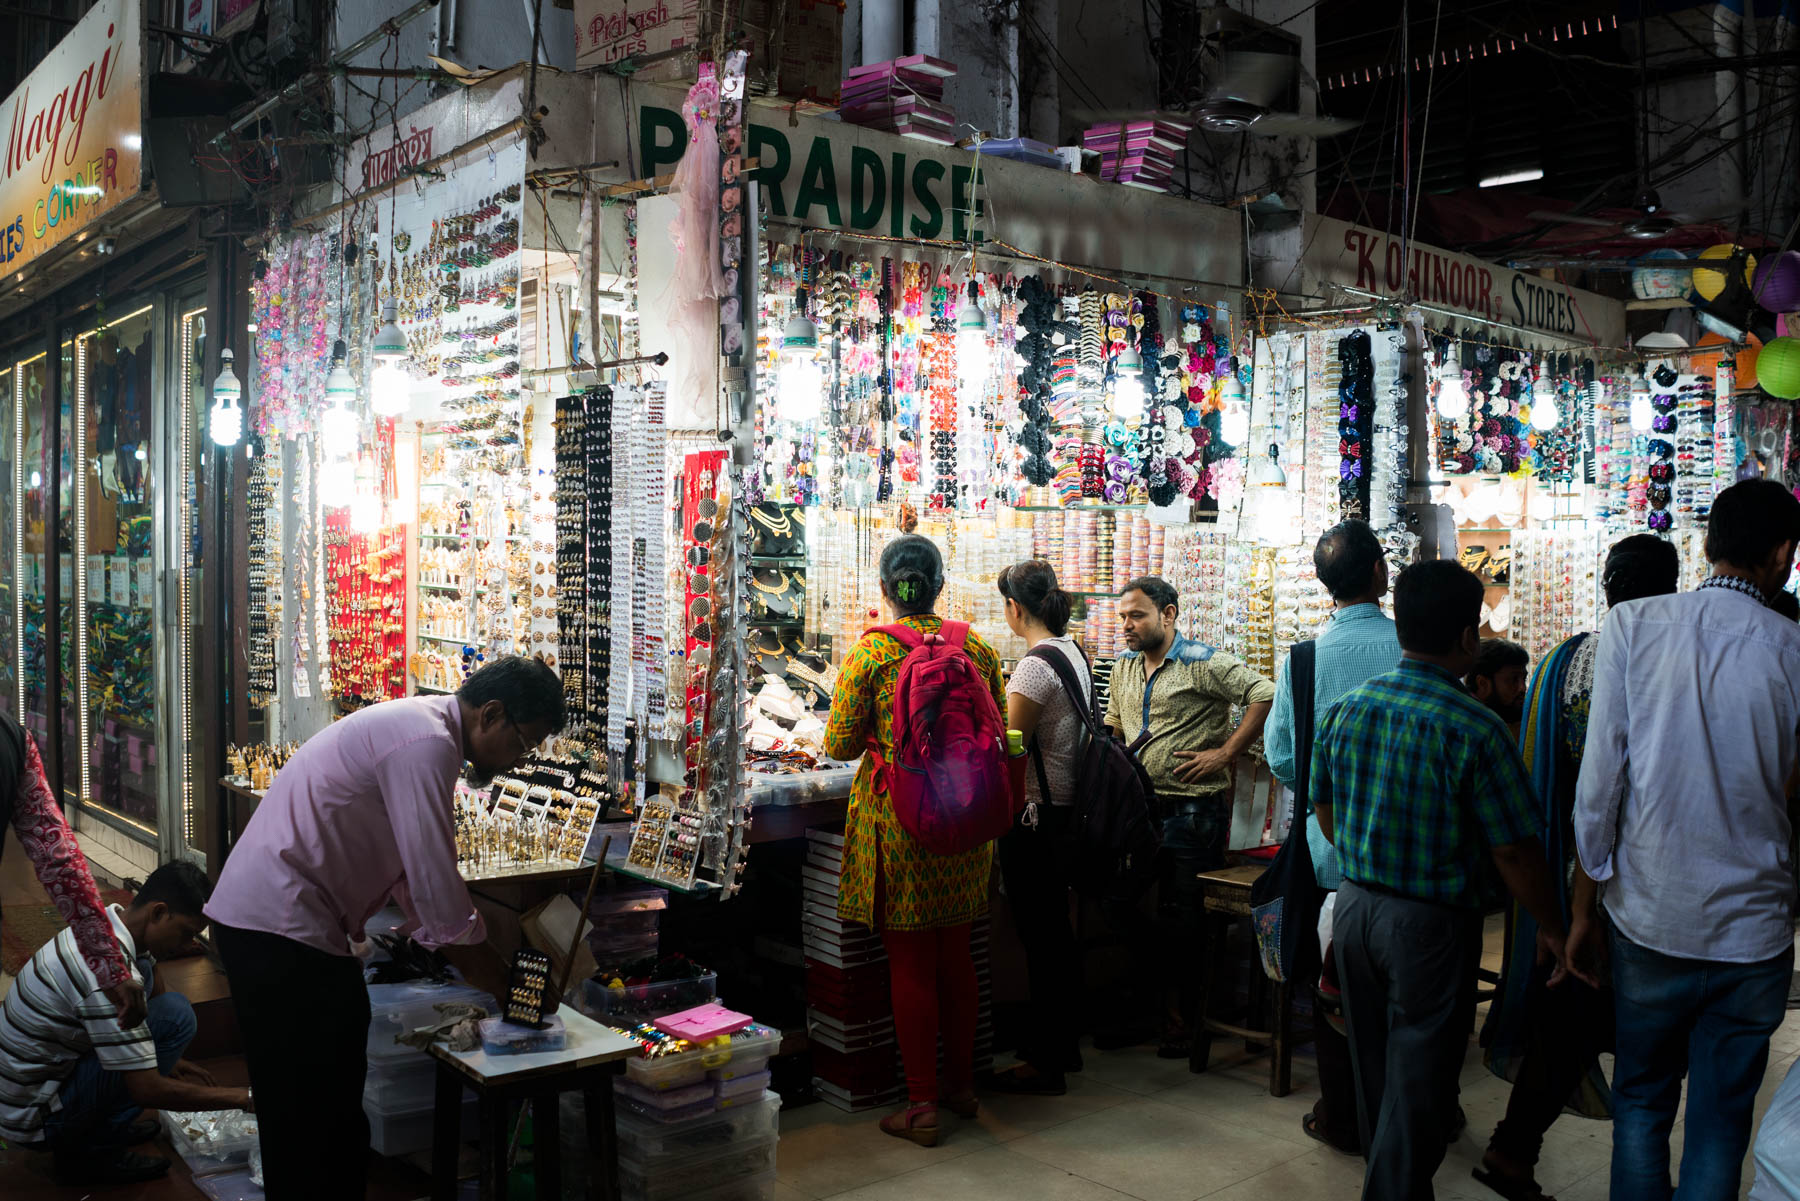 How to upgrade from a Nikon DSLR to a Sony a7RII, the best travel camera - Crisp detail in a shot of New Market bazaar in Kolkata, West Bengal, India - Lost With Purpose